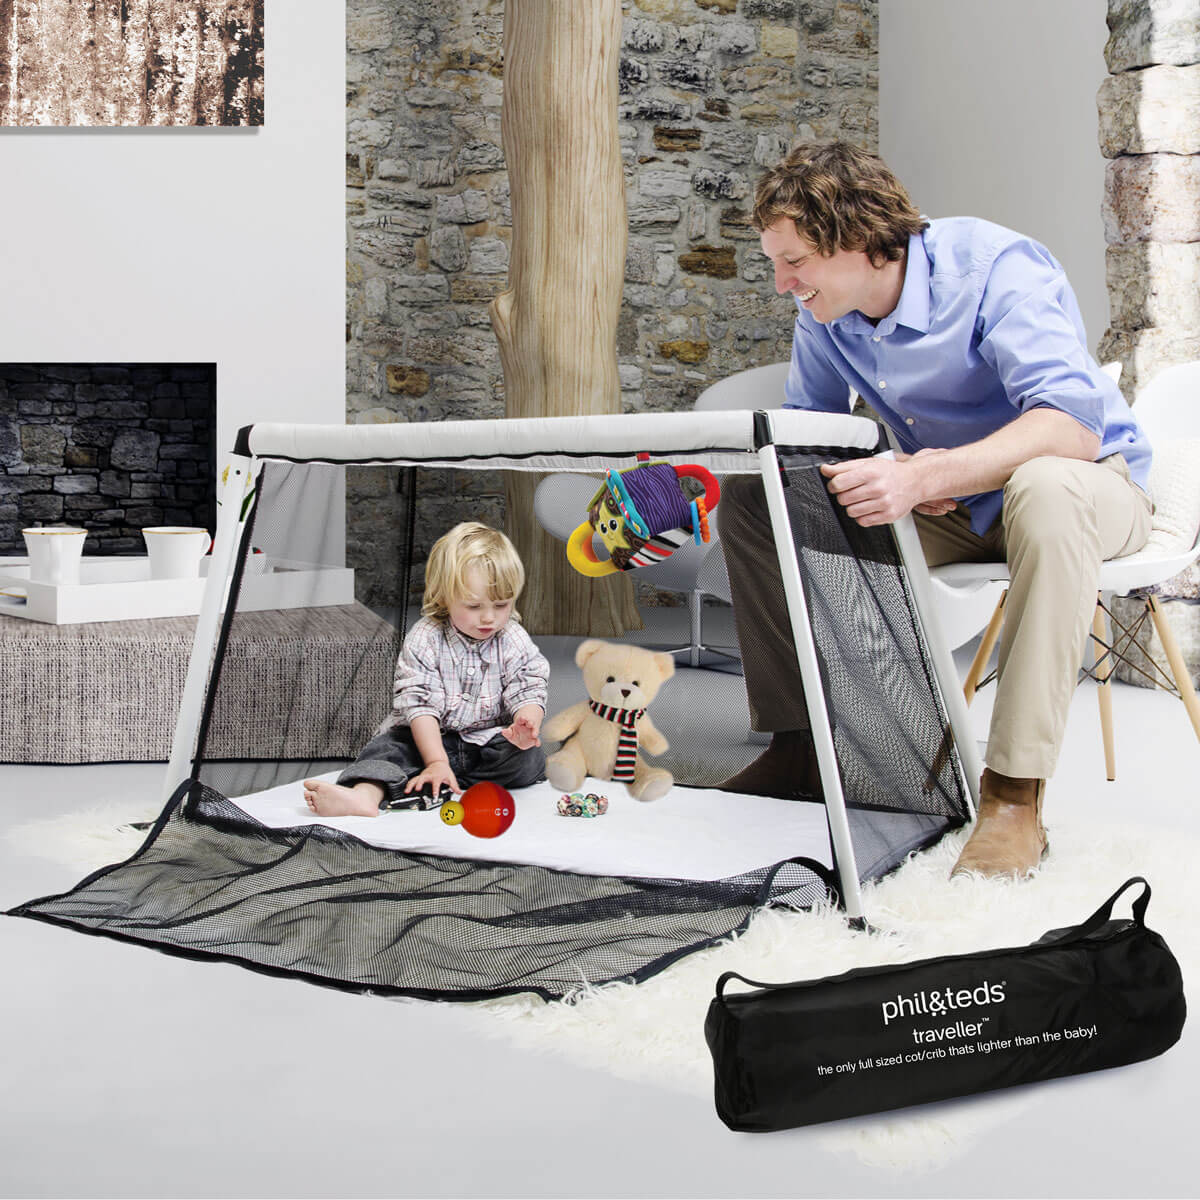 phil-teds-traveller-portable-travel-baby-cot-great-for-playtime-with-dad-1200.jpg